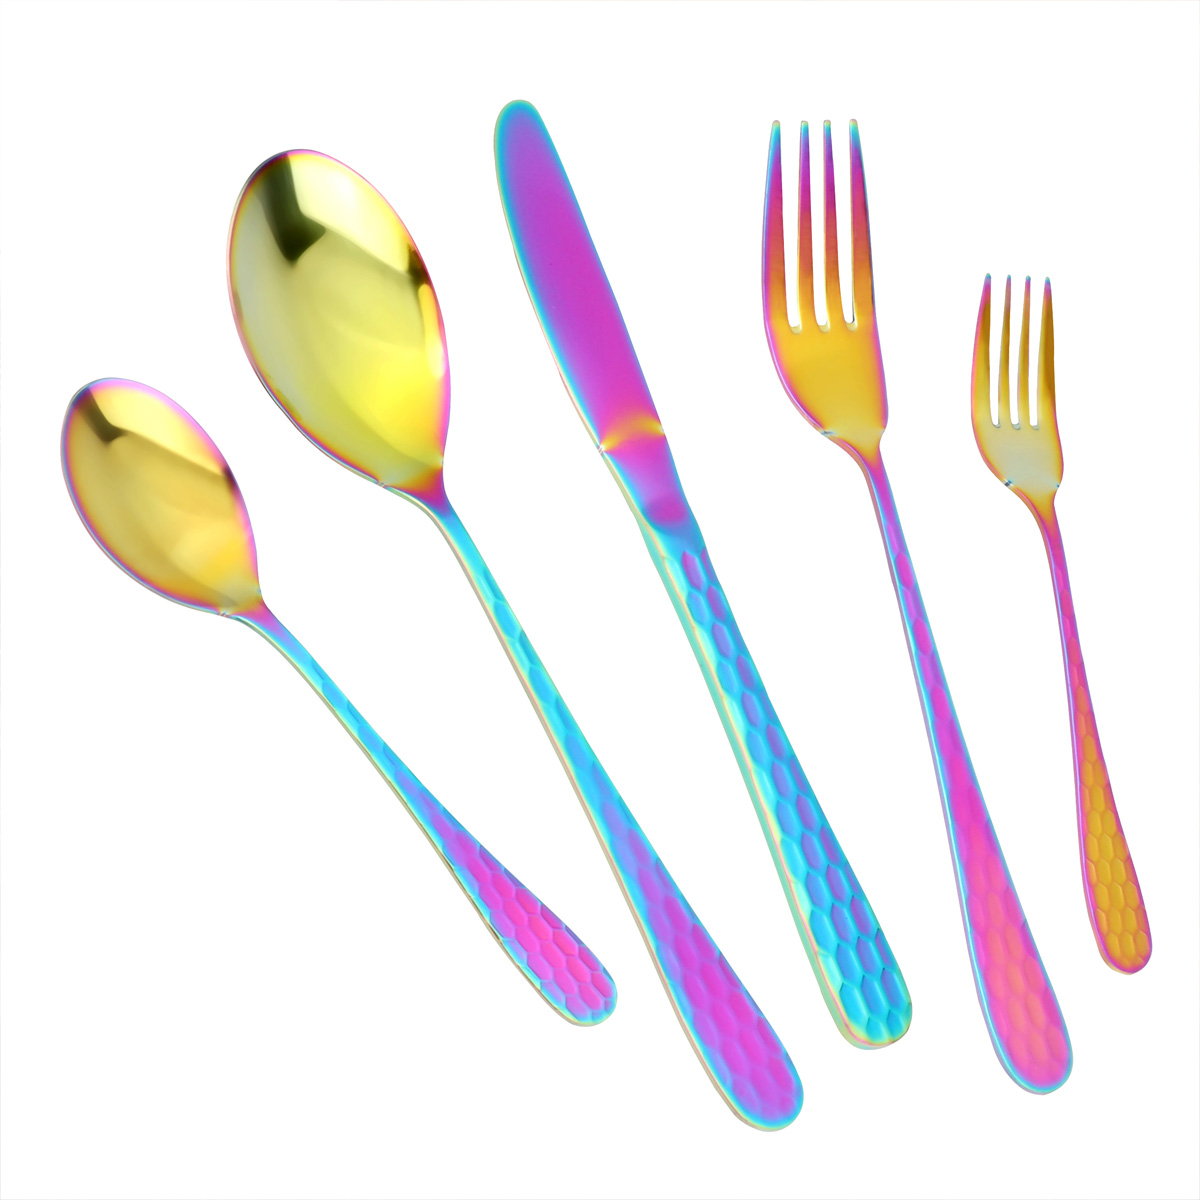 MDEALY 30-Piece Rainbow Silverware Flatware Cutlery Set, Stainless Steel Kitchen Utensils Service for 6, Include Dinner Knives,Dinner Forks,Dinner Spoons,Salad Forks,Teaspoons, Multicolor Elegant Gift